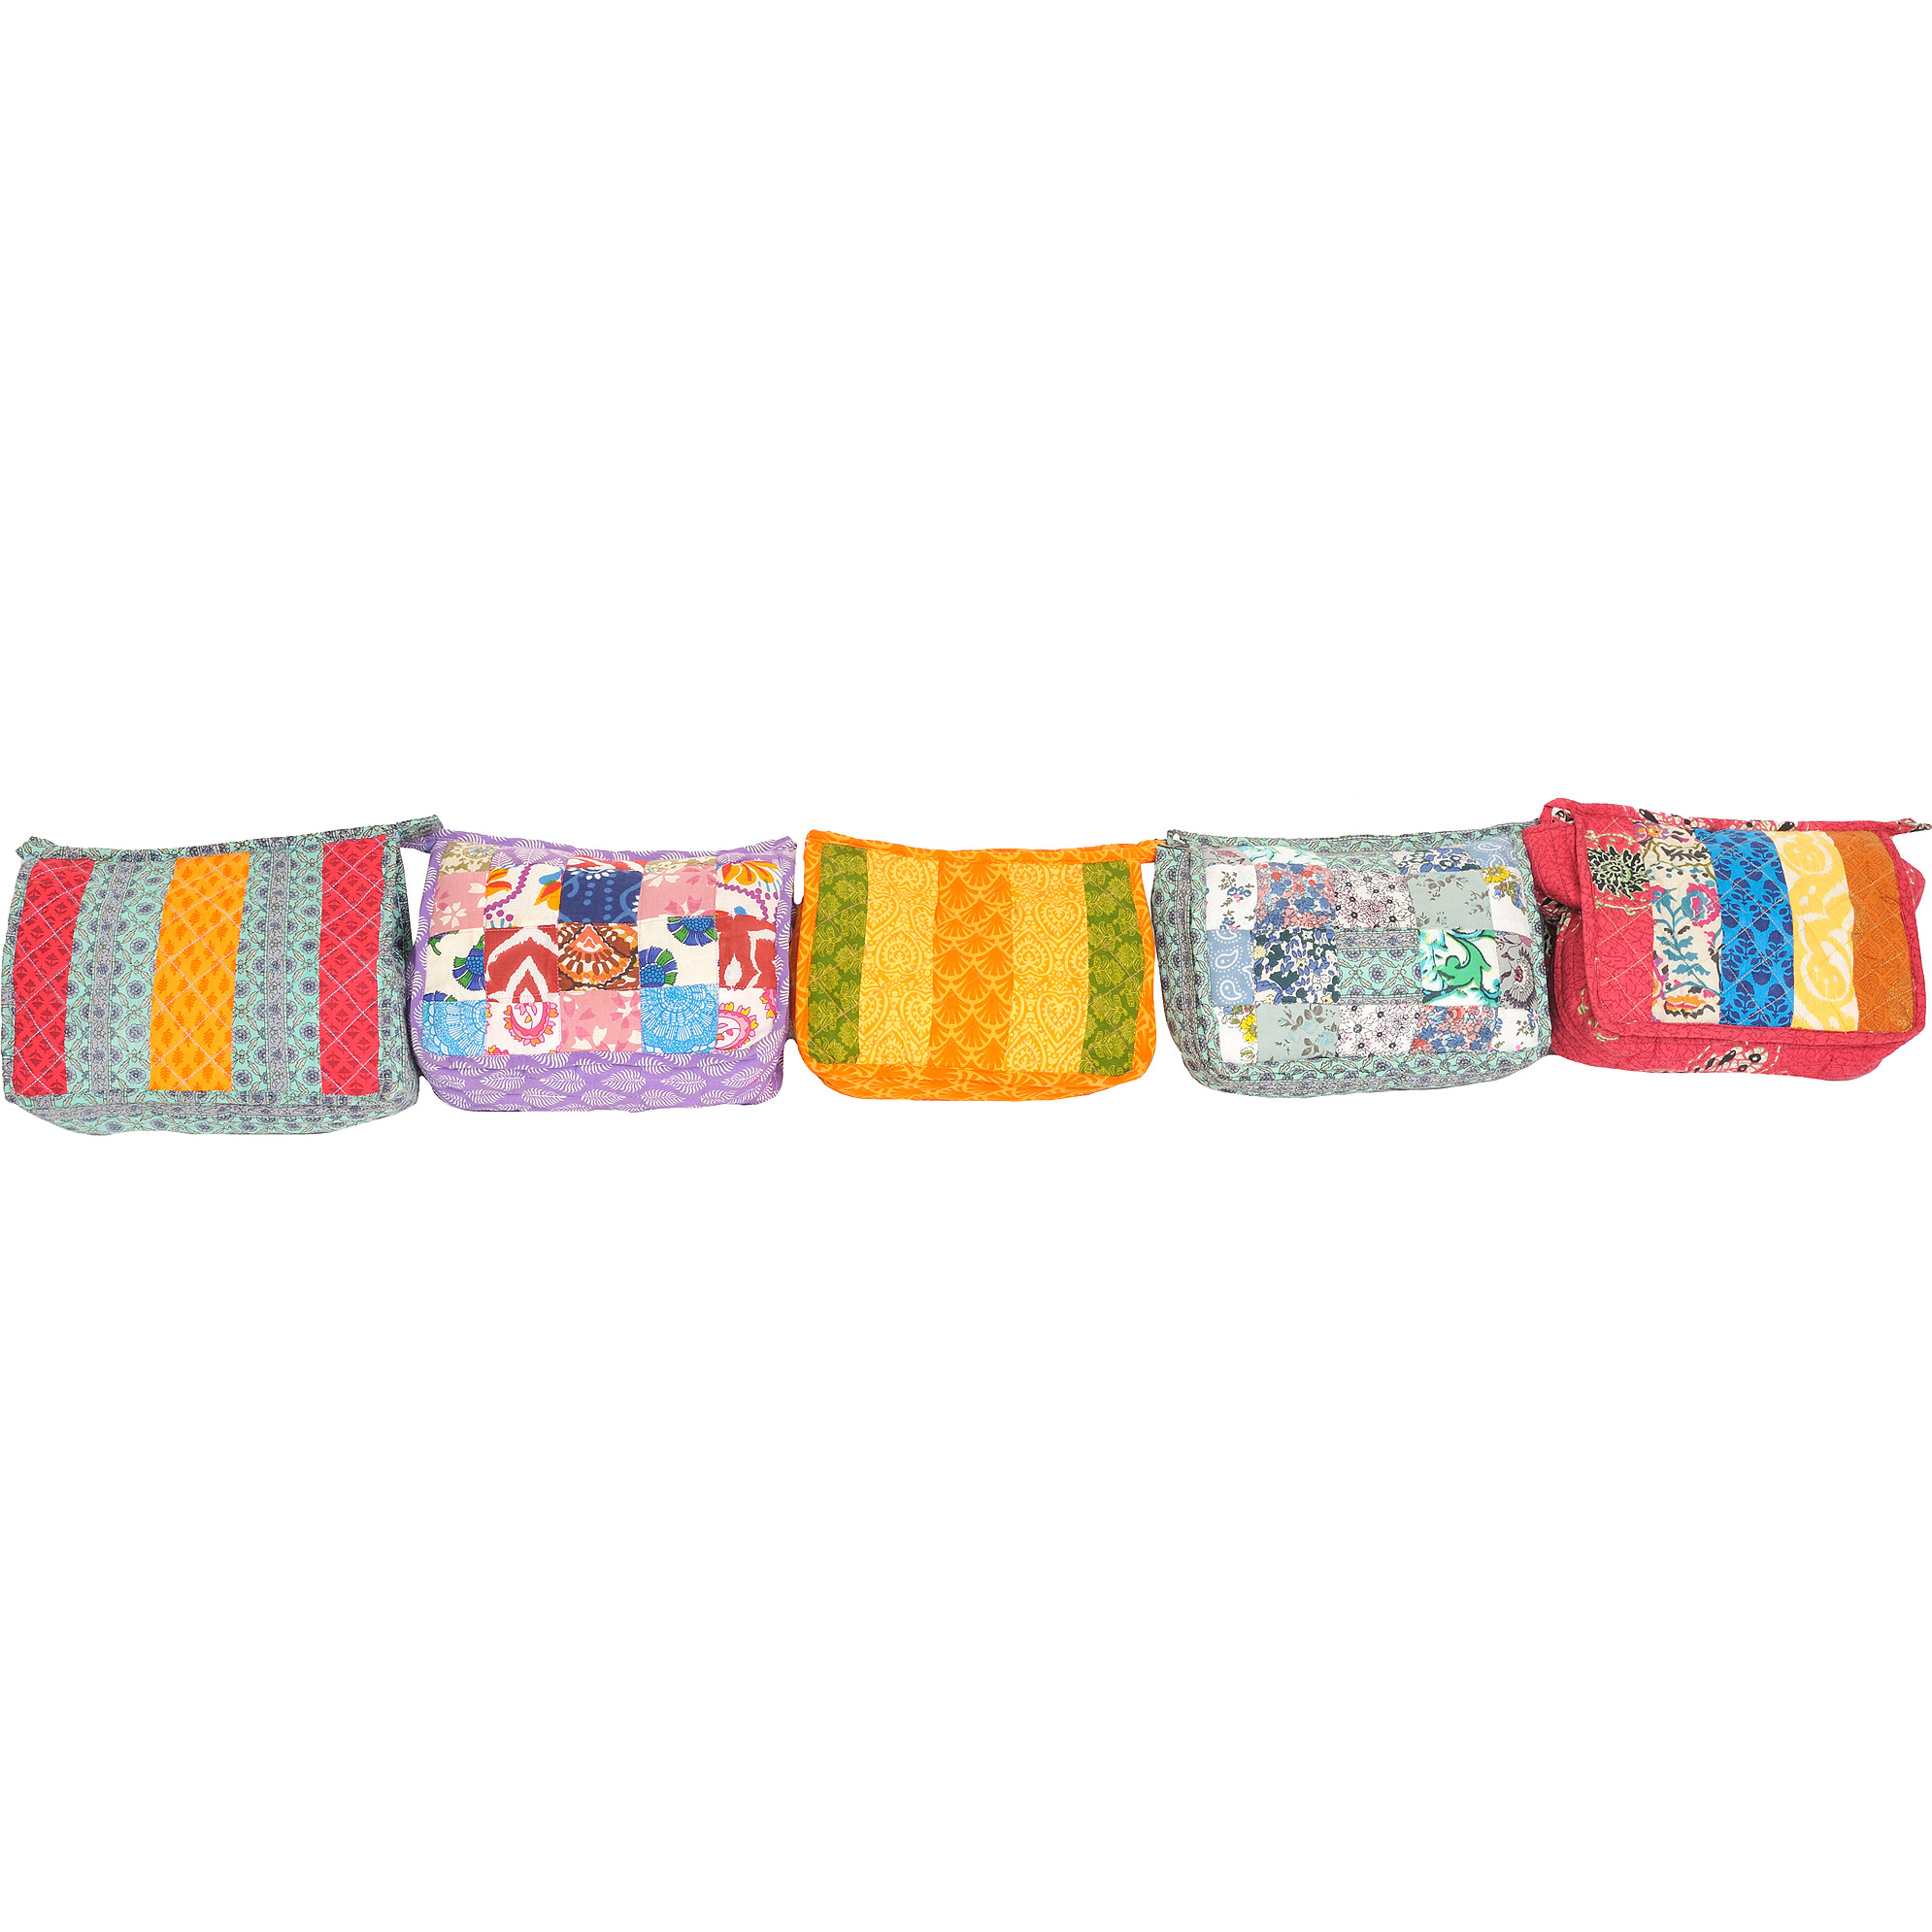 Lot of Five Printed Clutch Bags with Patchwork